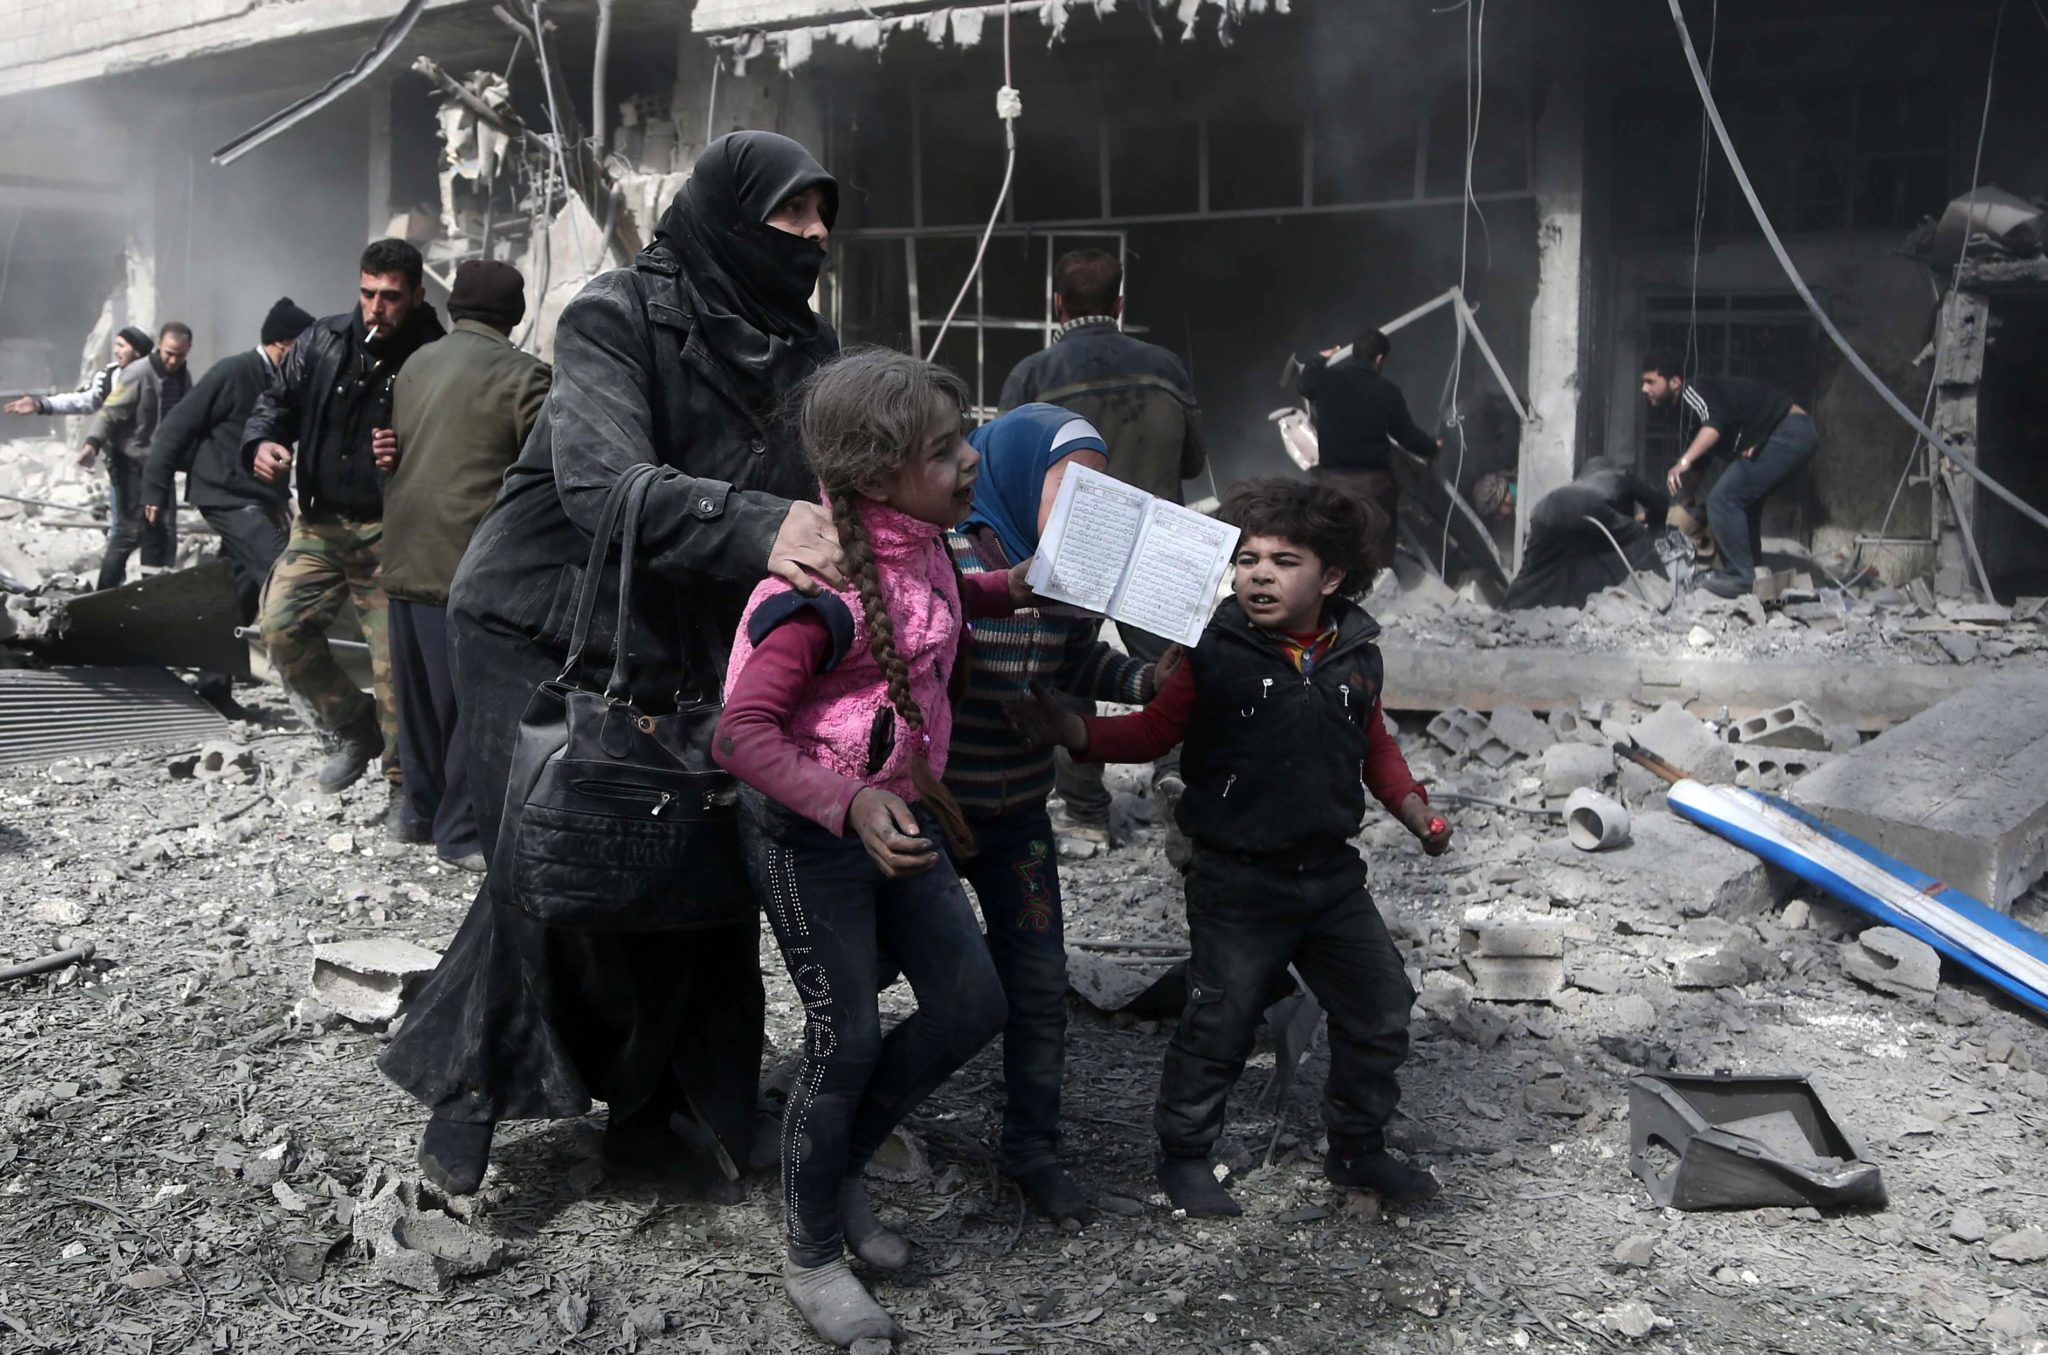 Syria: Security Council must ensure civilians in Eastern Ghouta get immediate humanitarian assistance